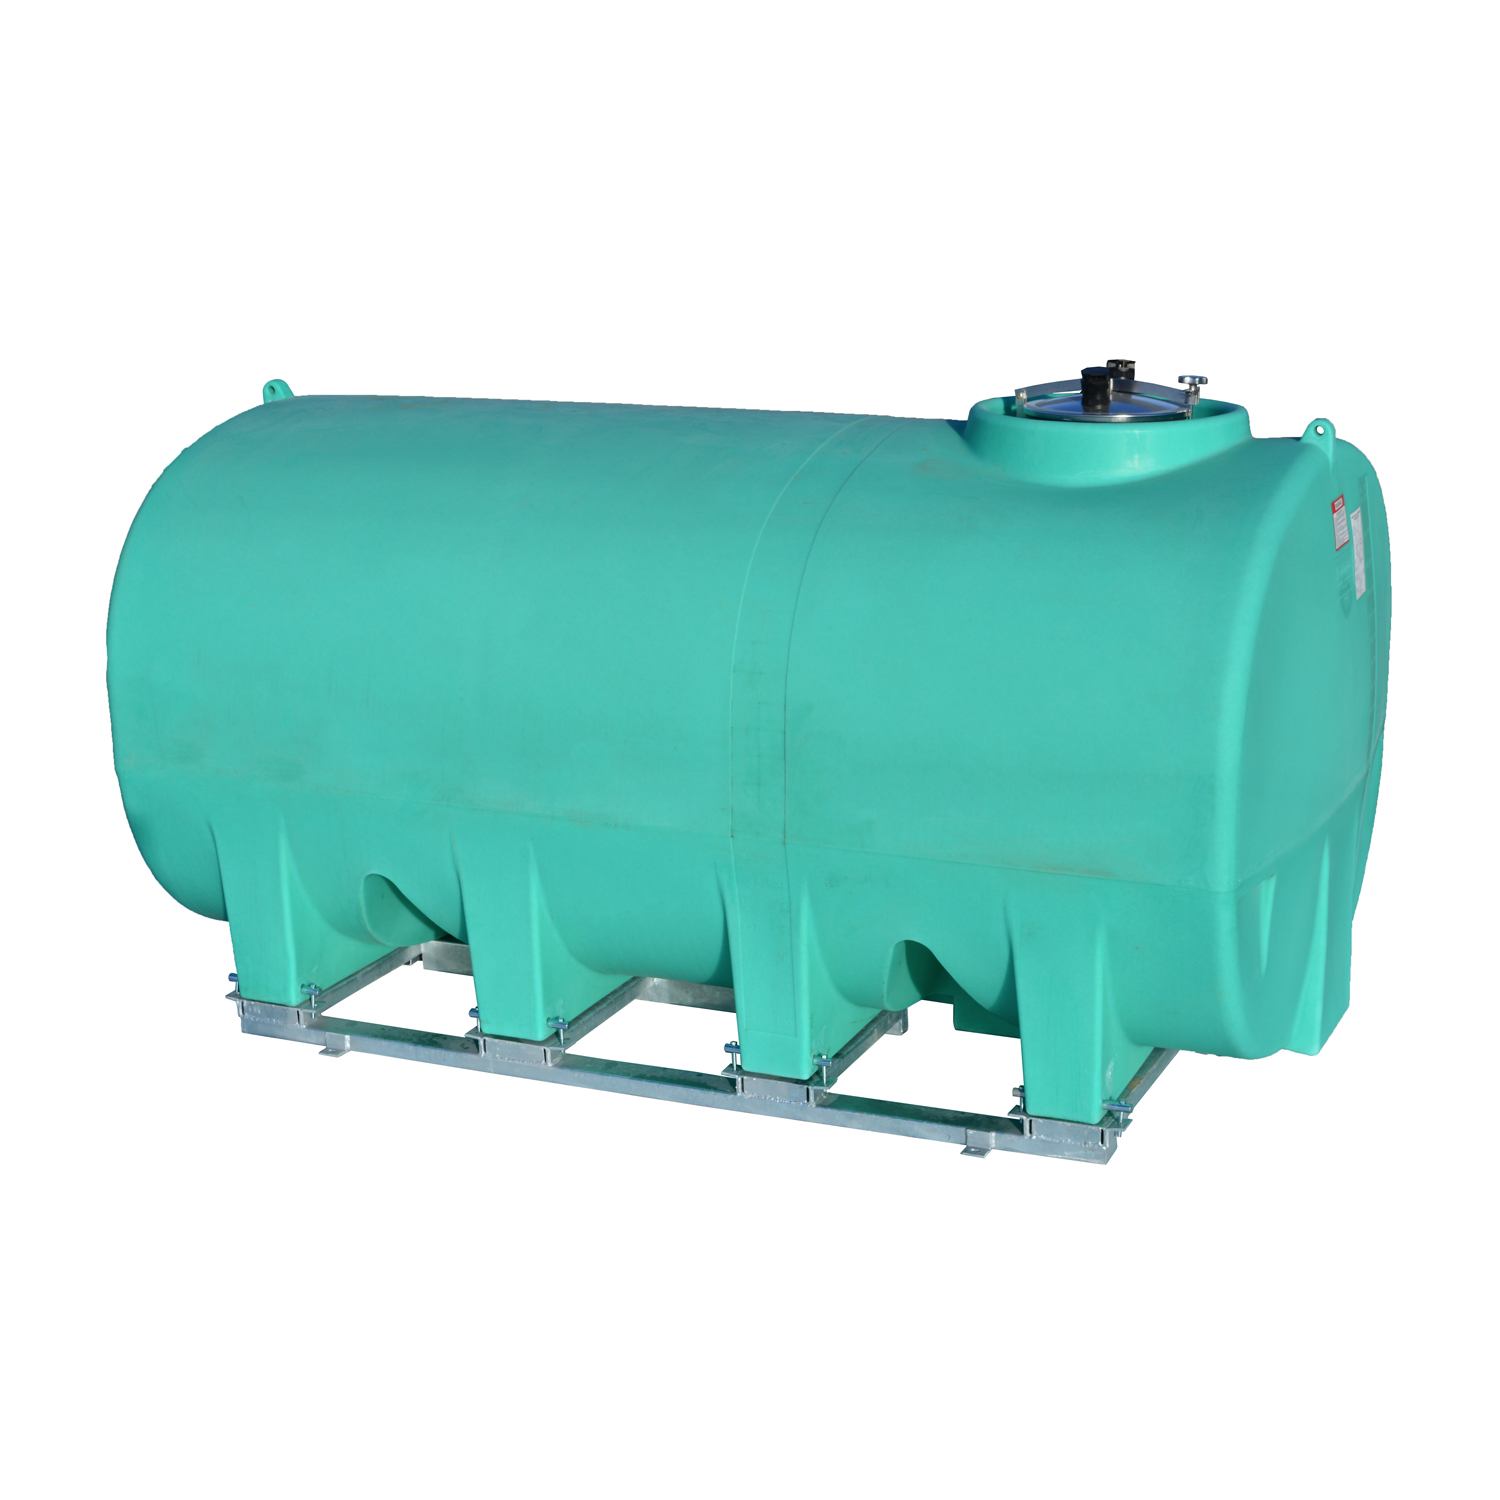 Enduraplas 2,200 Gallon Sump Bottom Transport Tank With Frame